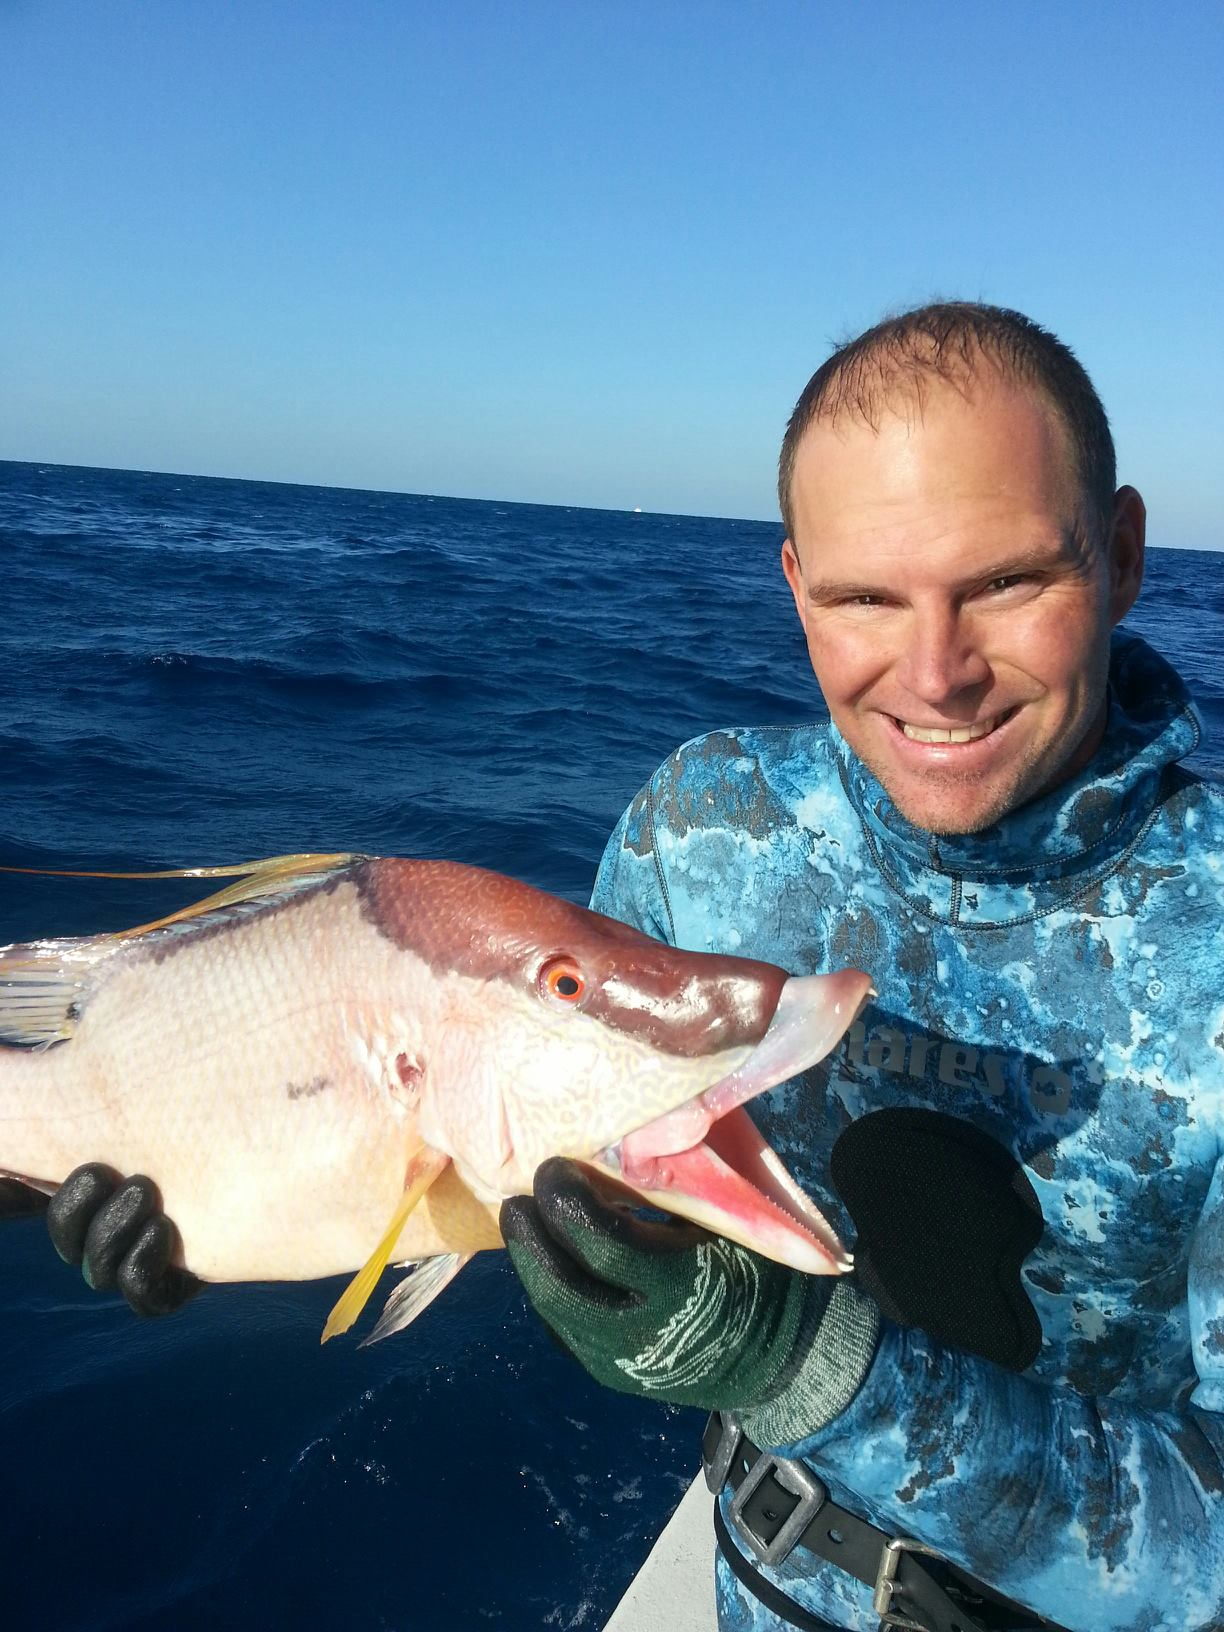 looks like it will be hogfish sandwiches on the menu!